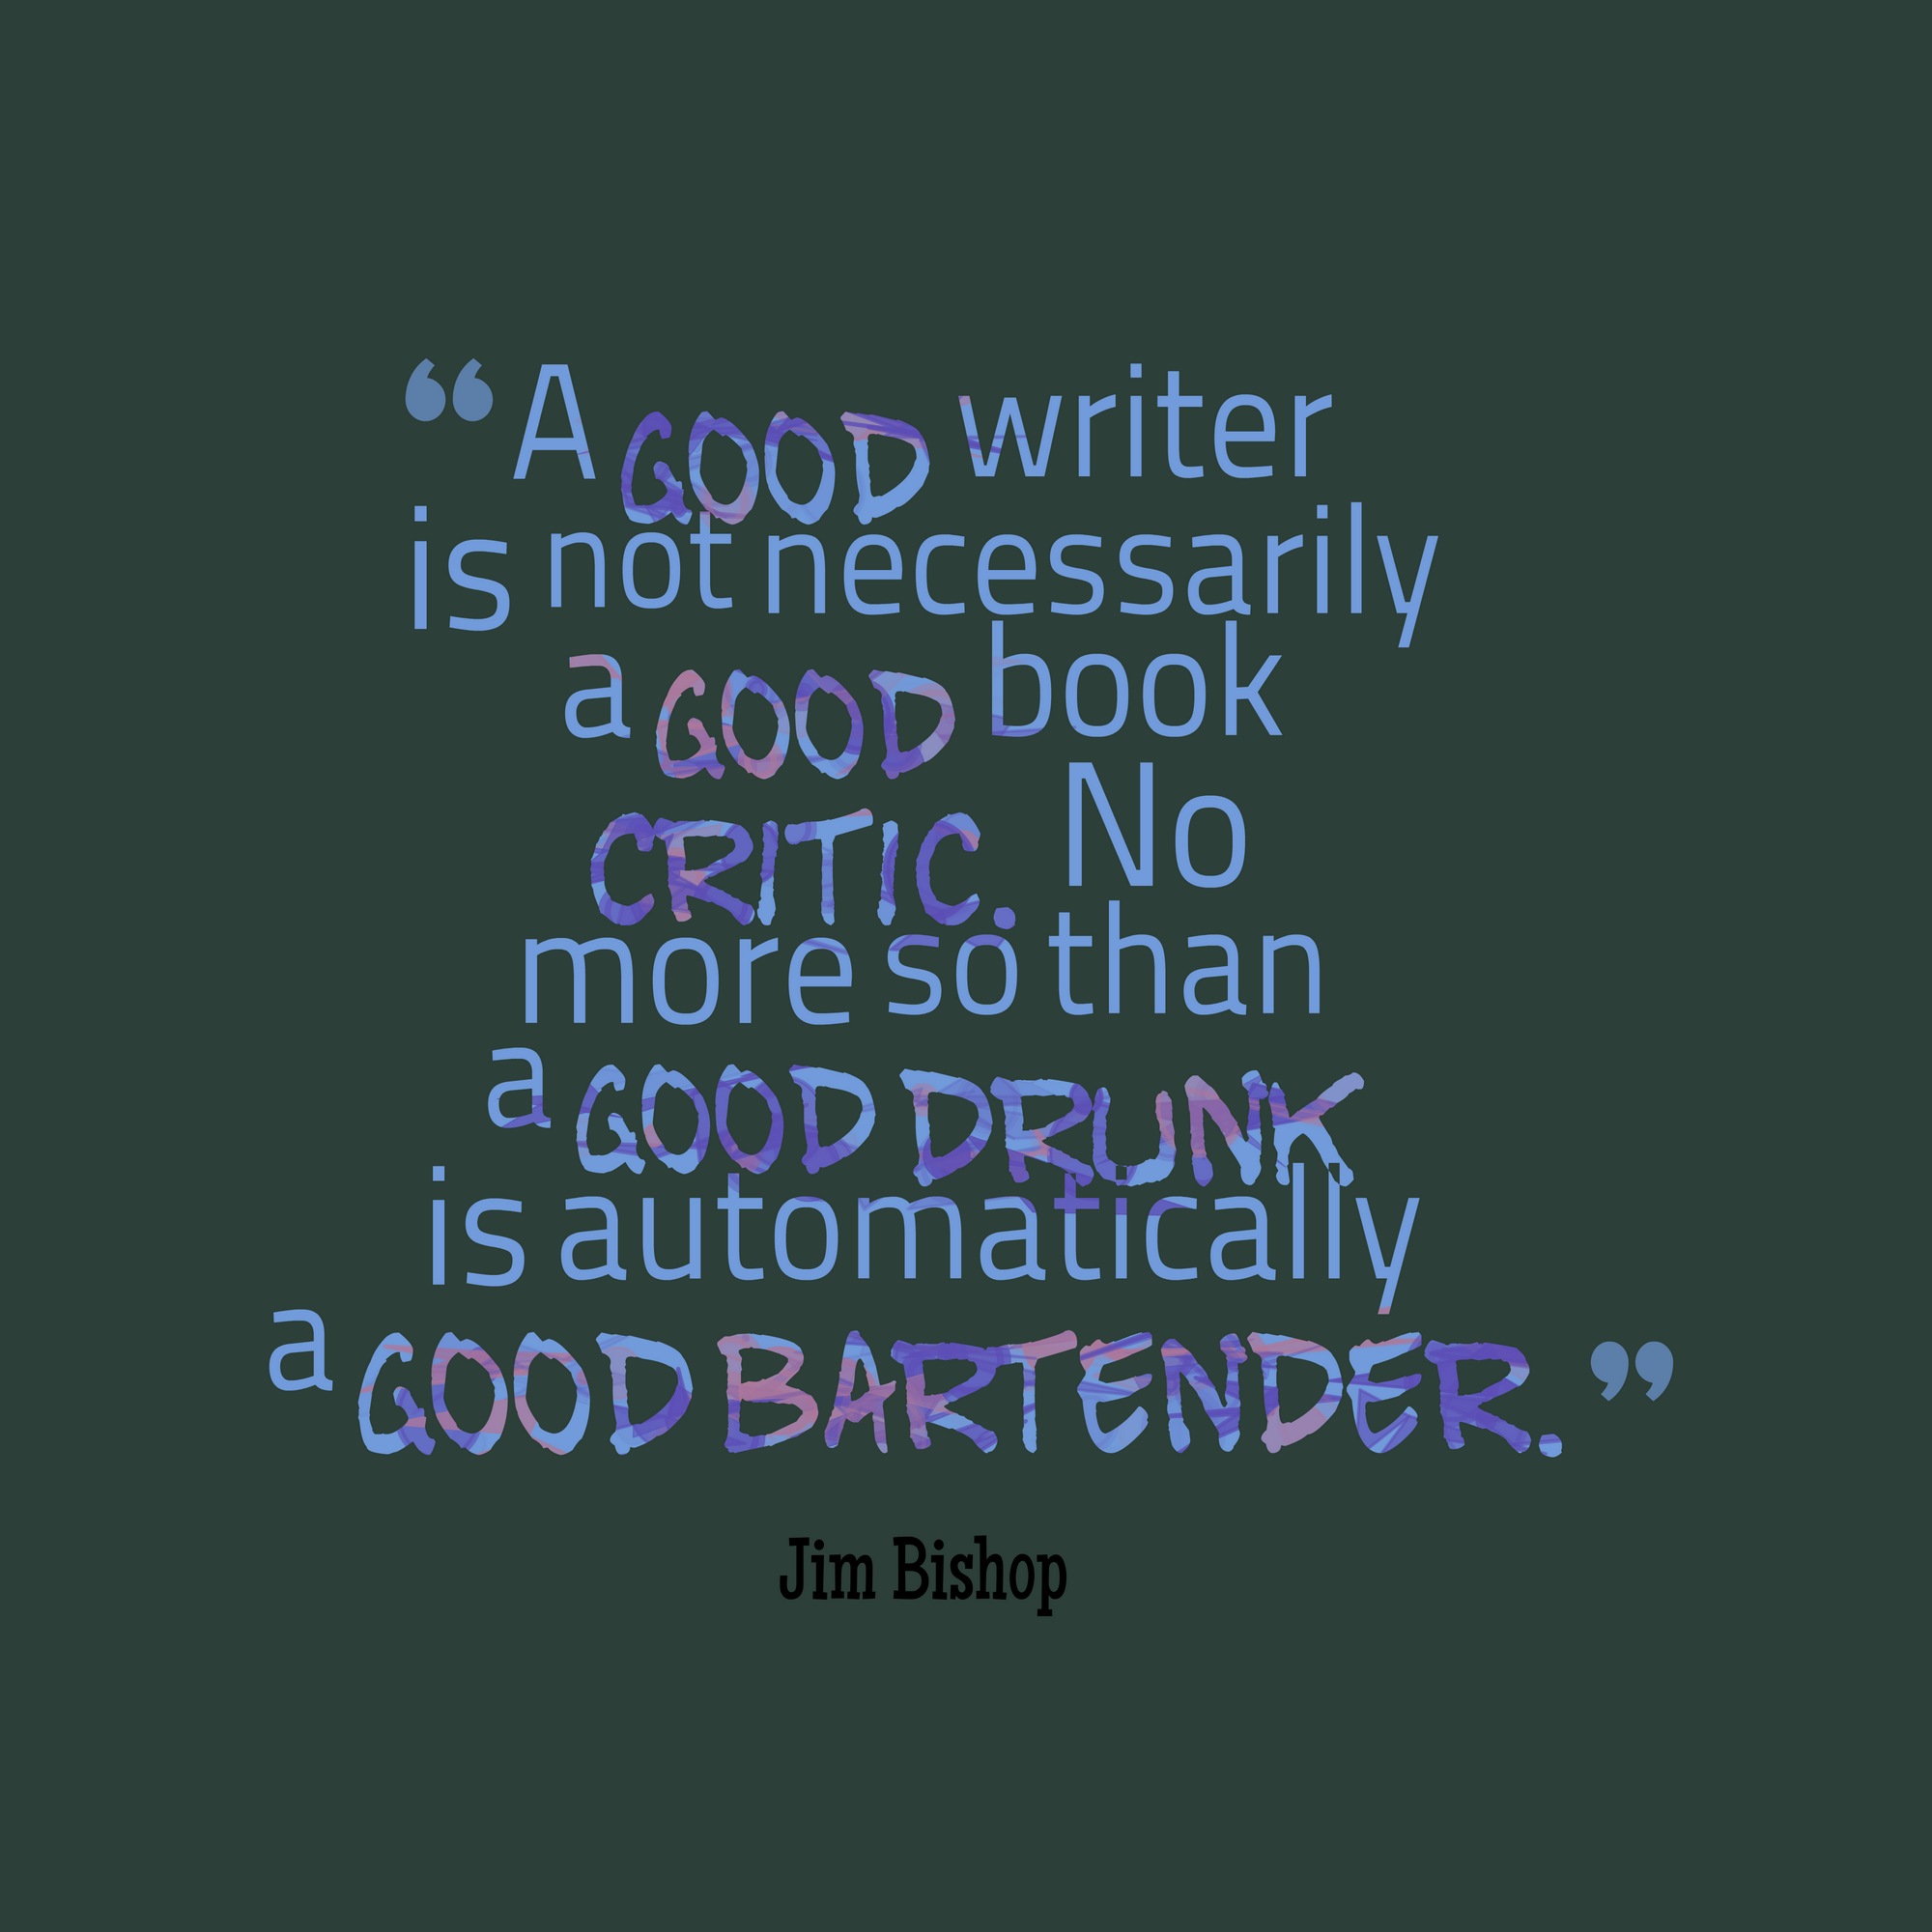 """""""A good write is not necessarily a good book critic. No more so than a good drunk is automatically a good bartender."""""""